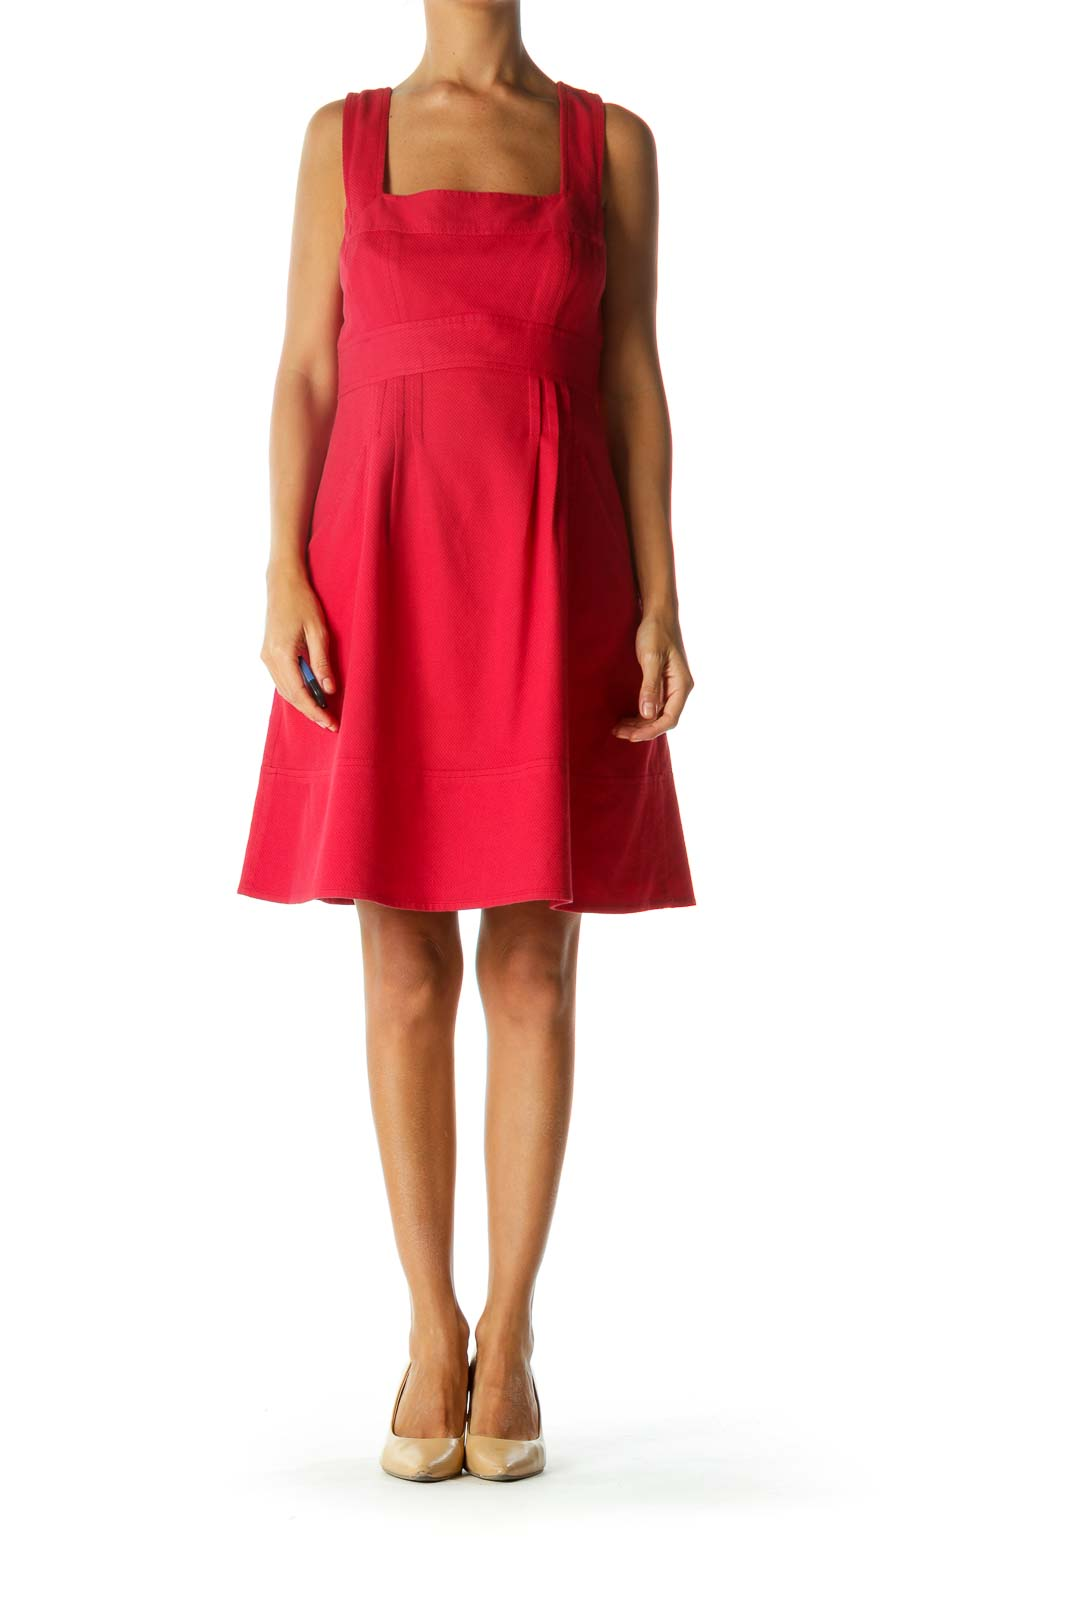 Red Square Neckline Pocketed Textured Day Dress